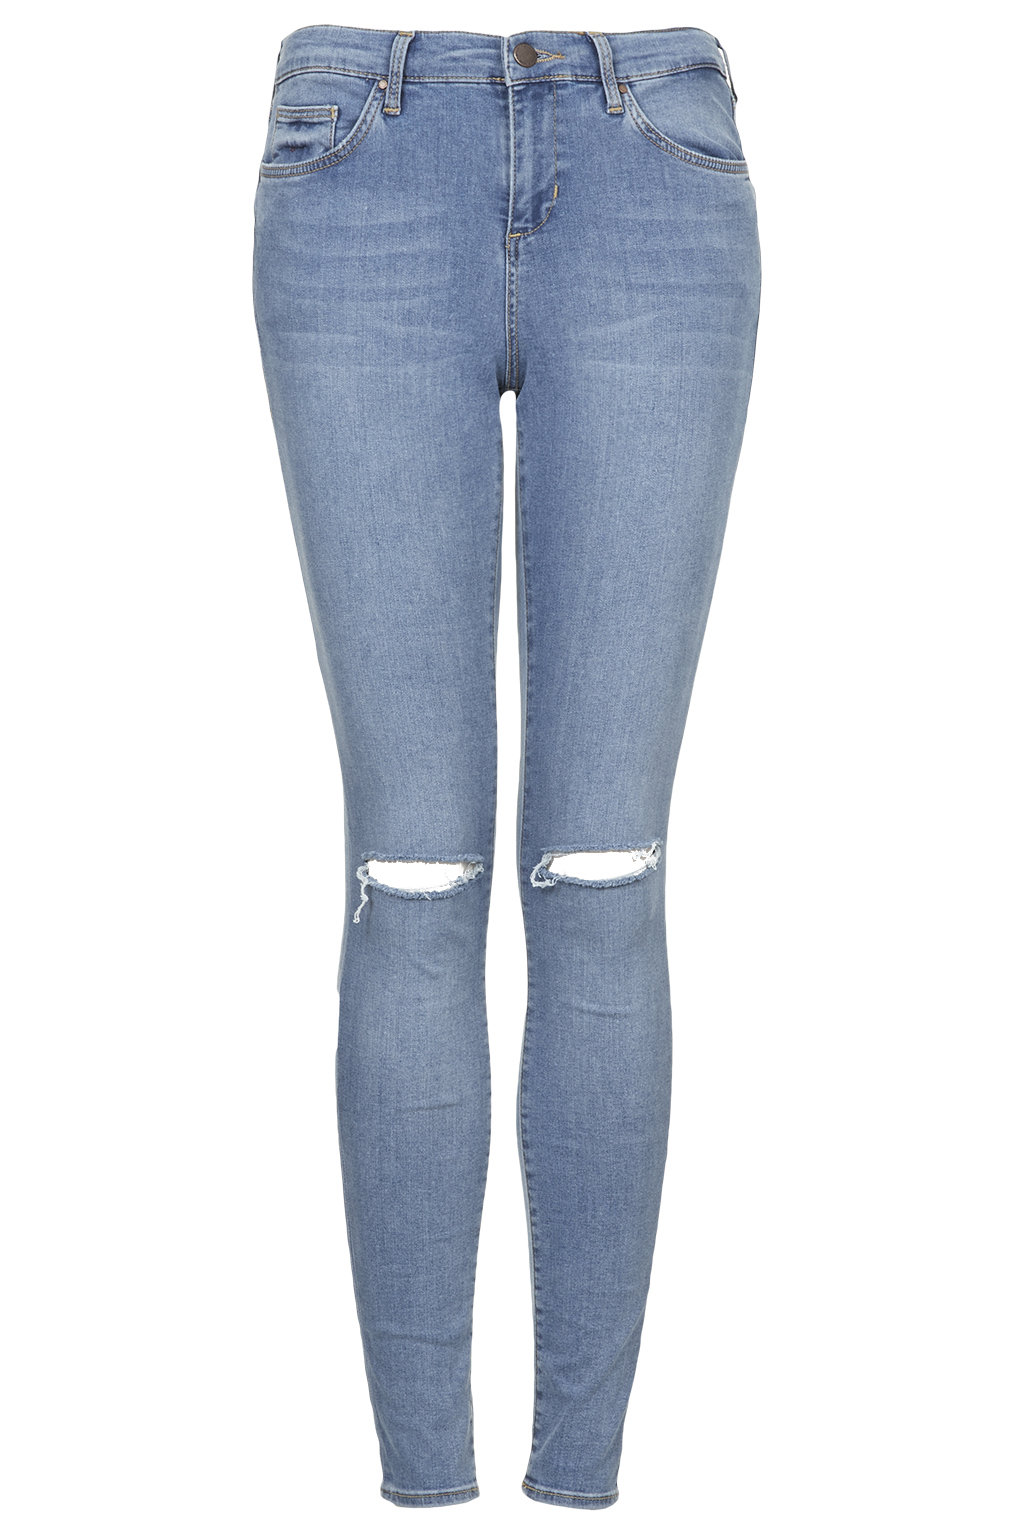 Moto salt and pepper leigh jeans